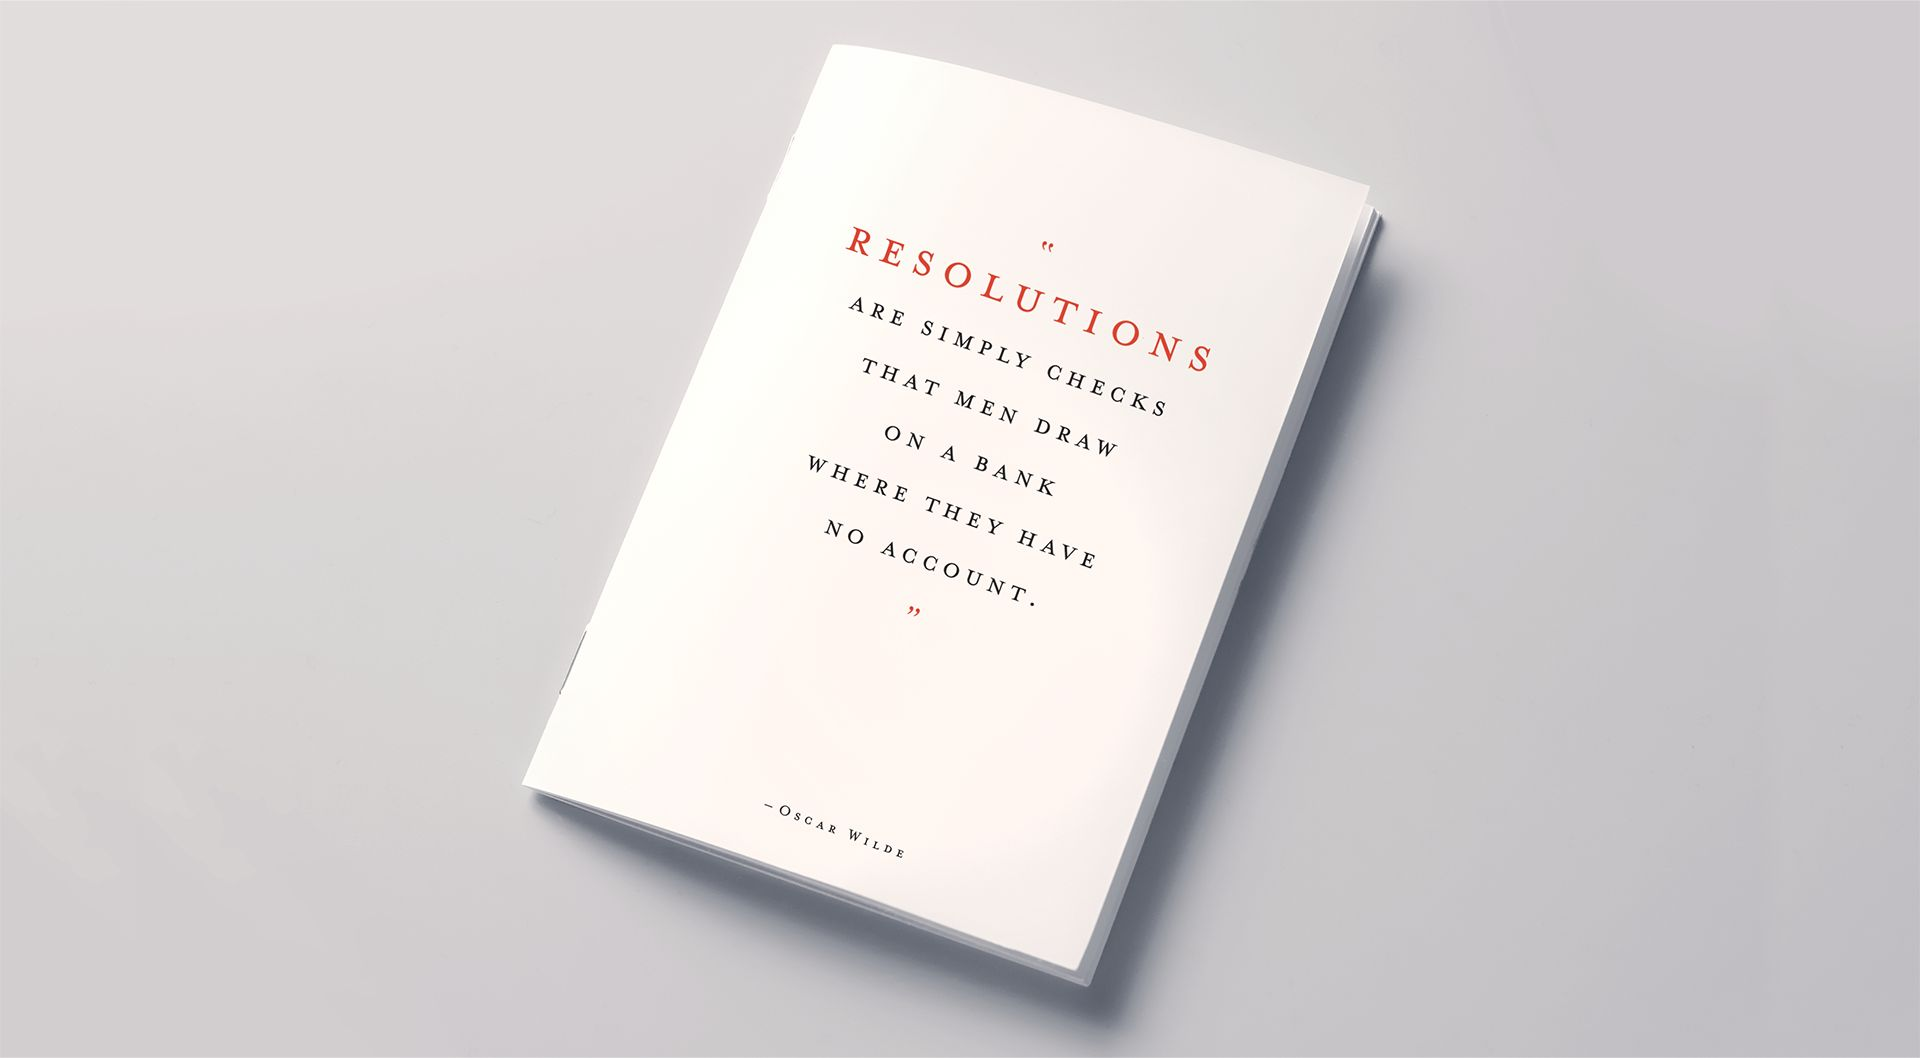 Resolutions book cover